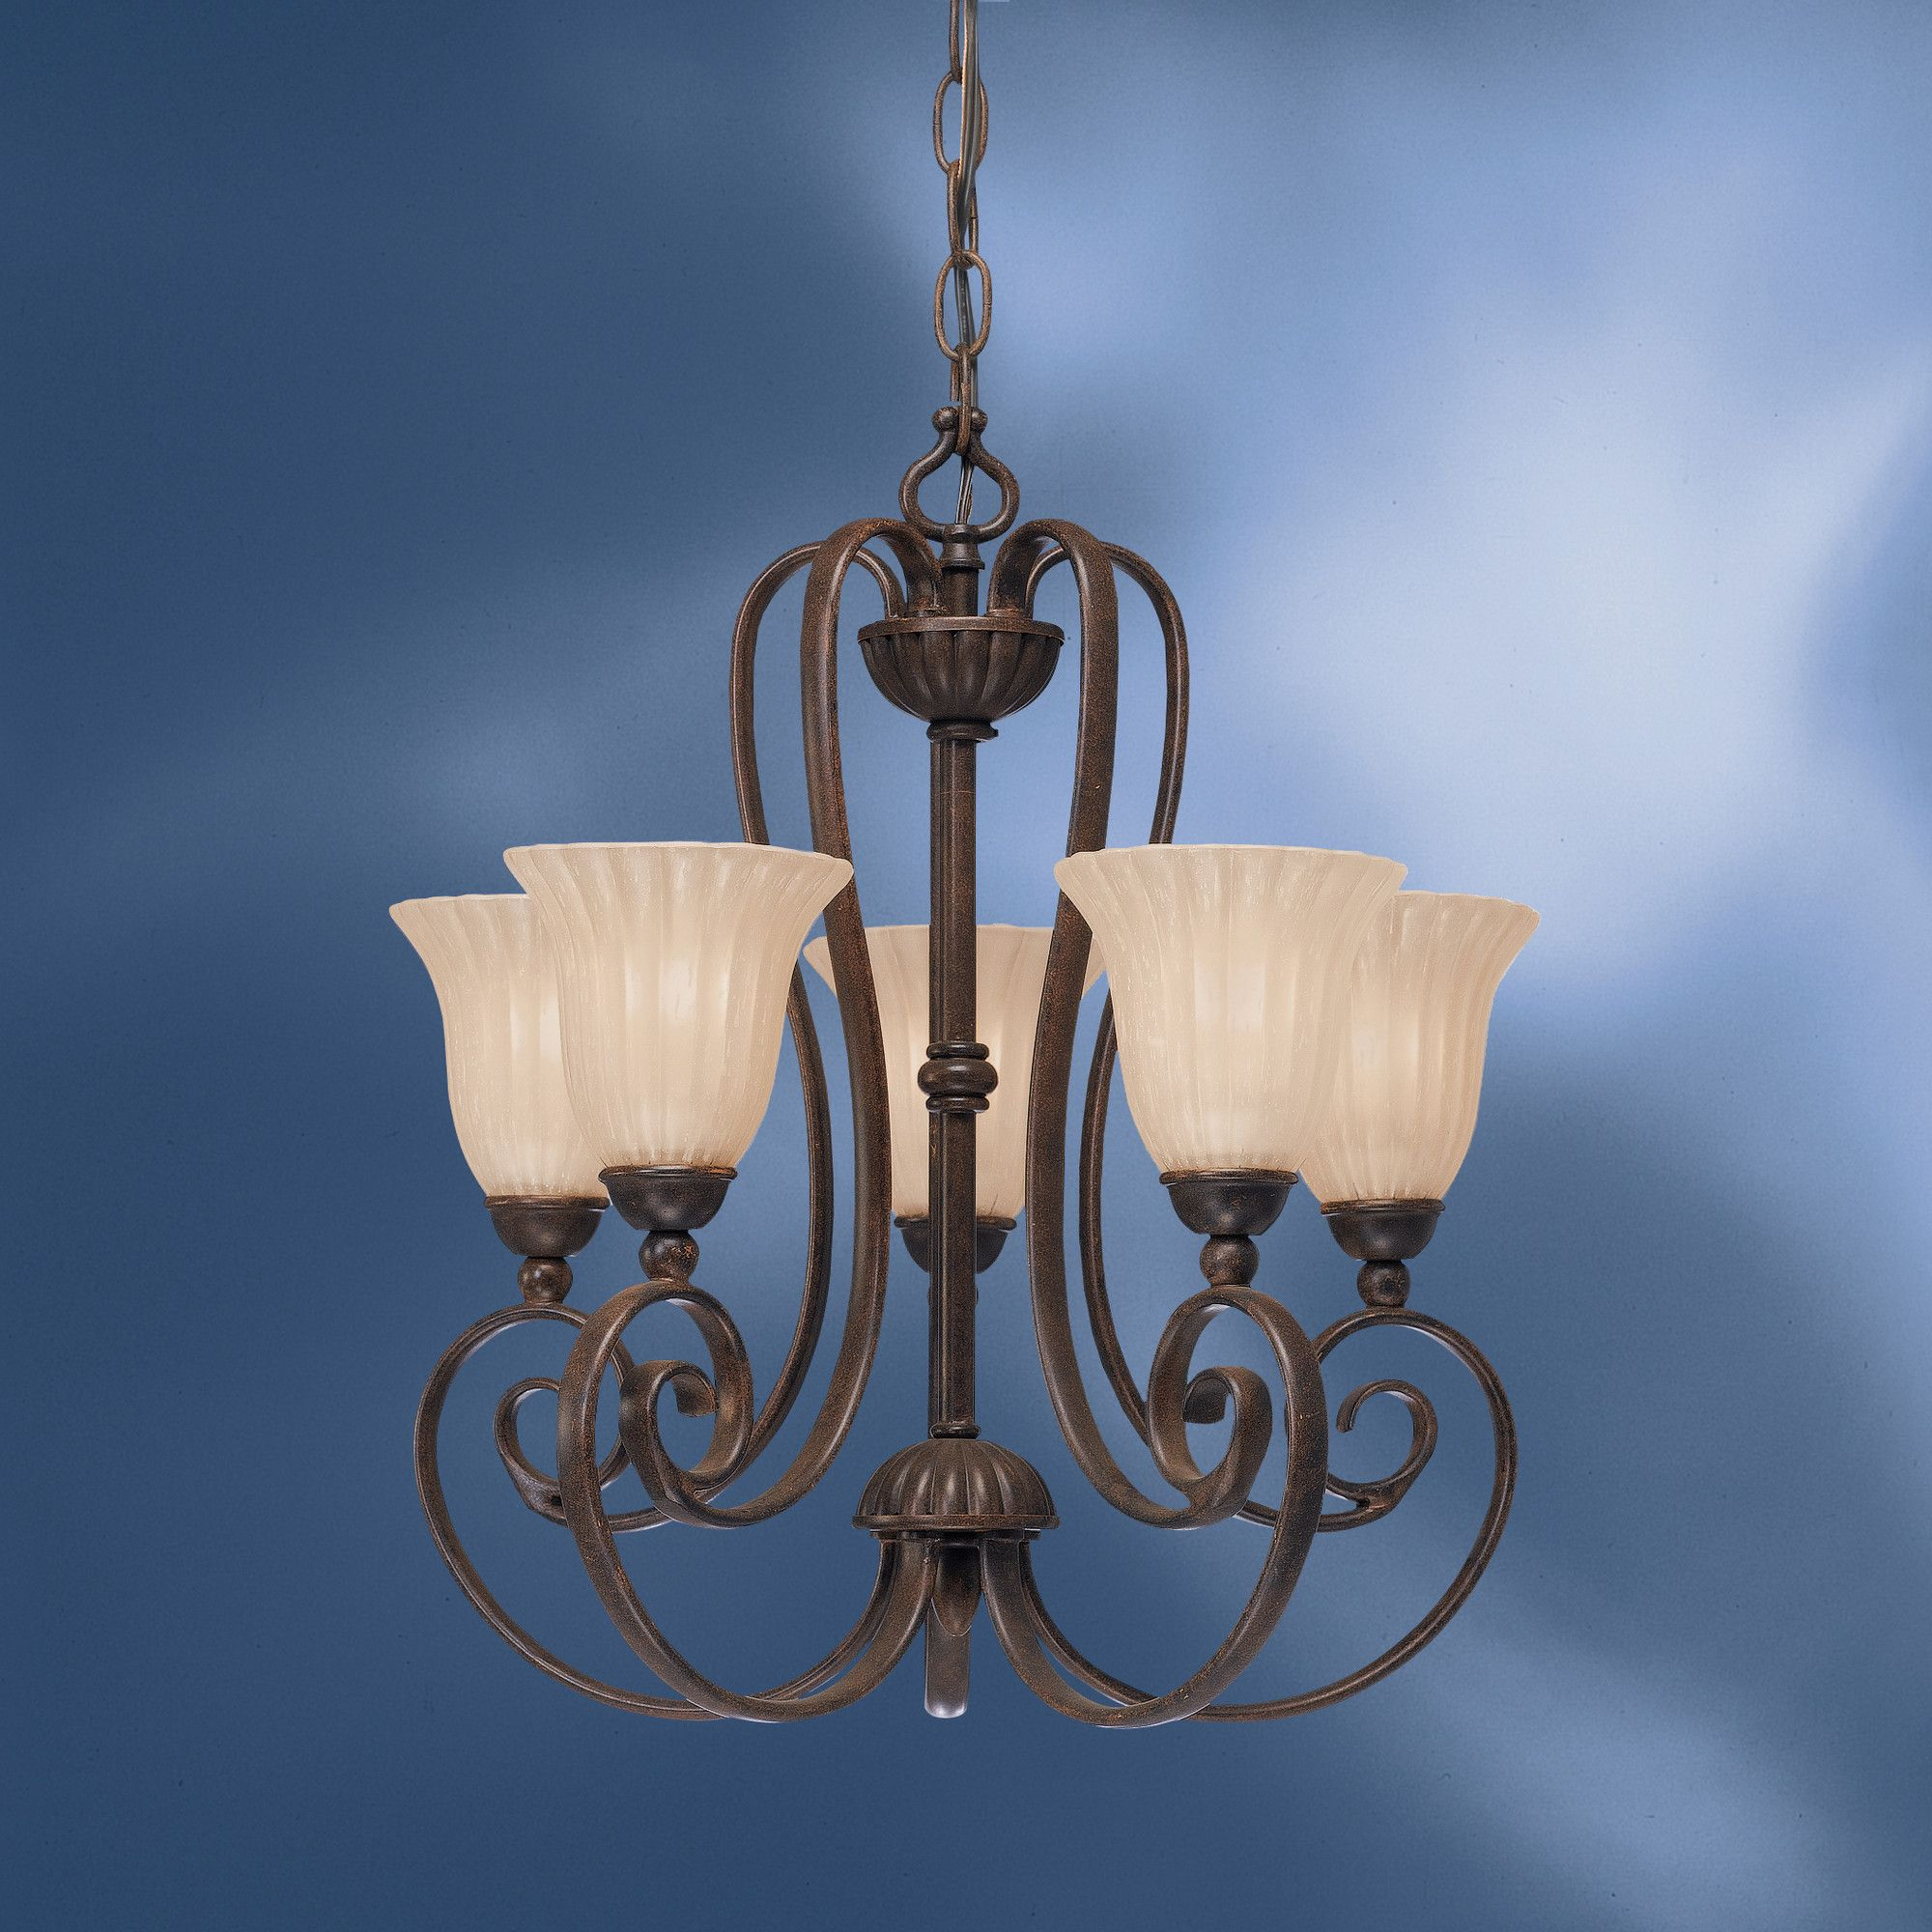 Willowmore 5 Light Chandelette | Products | Pinterest | Chandeliers ...